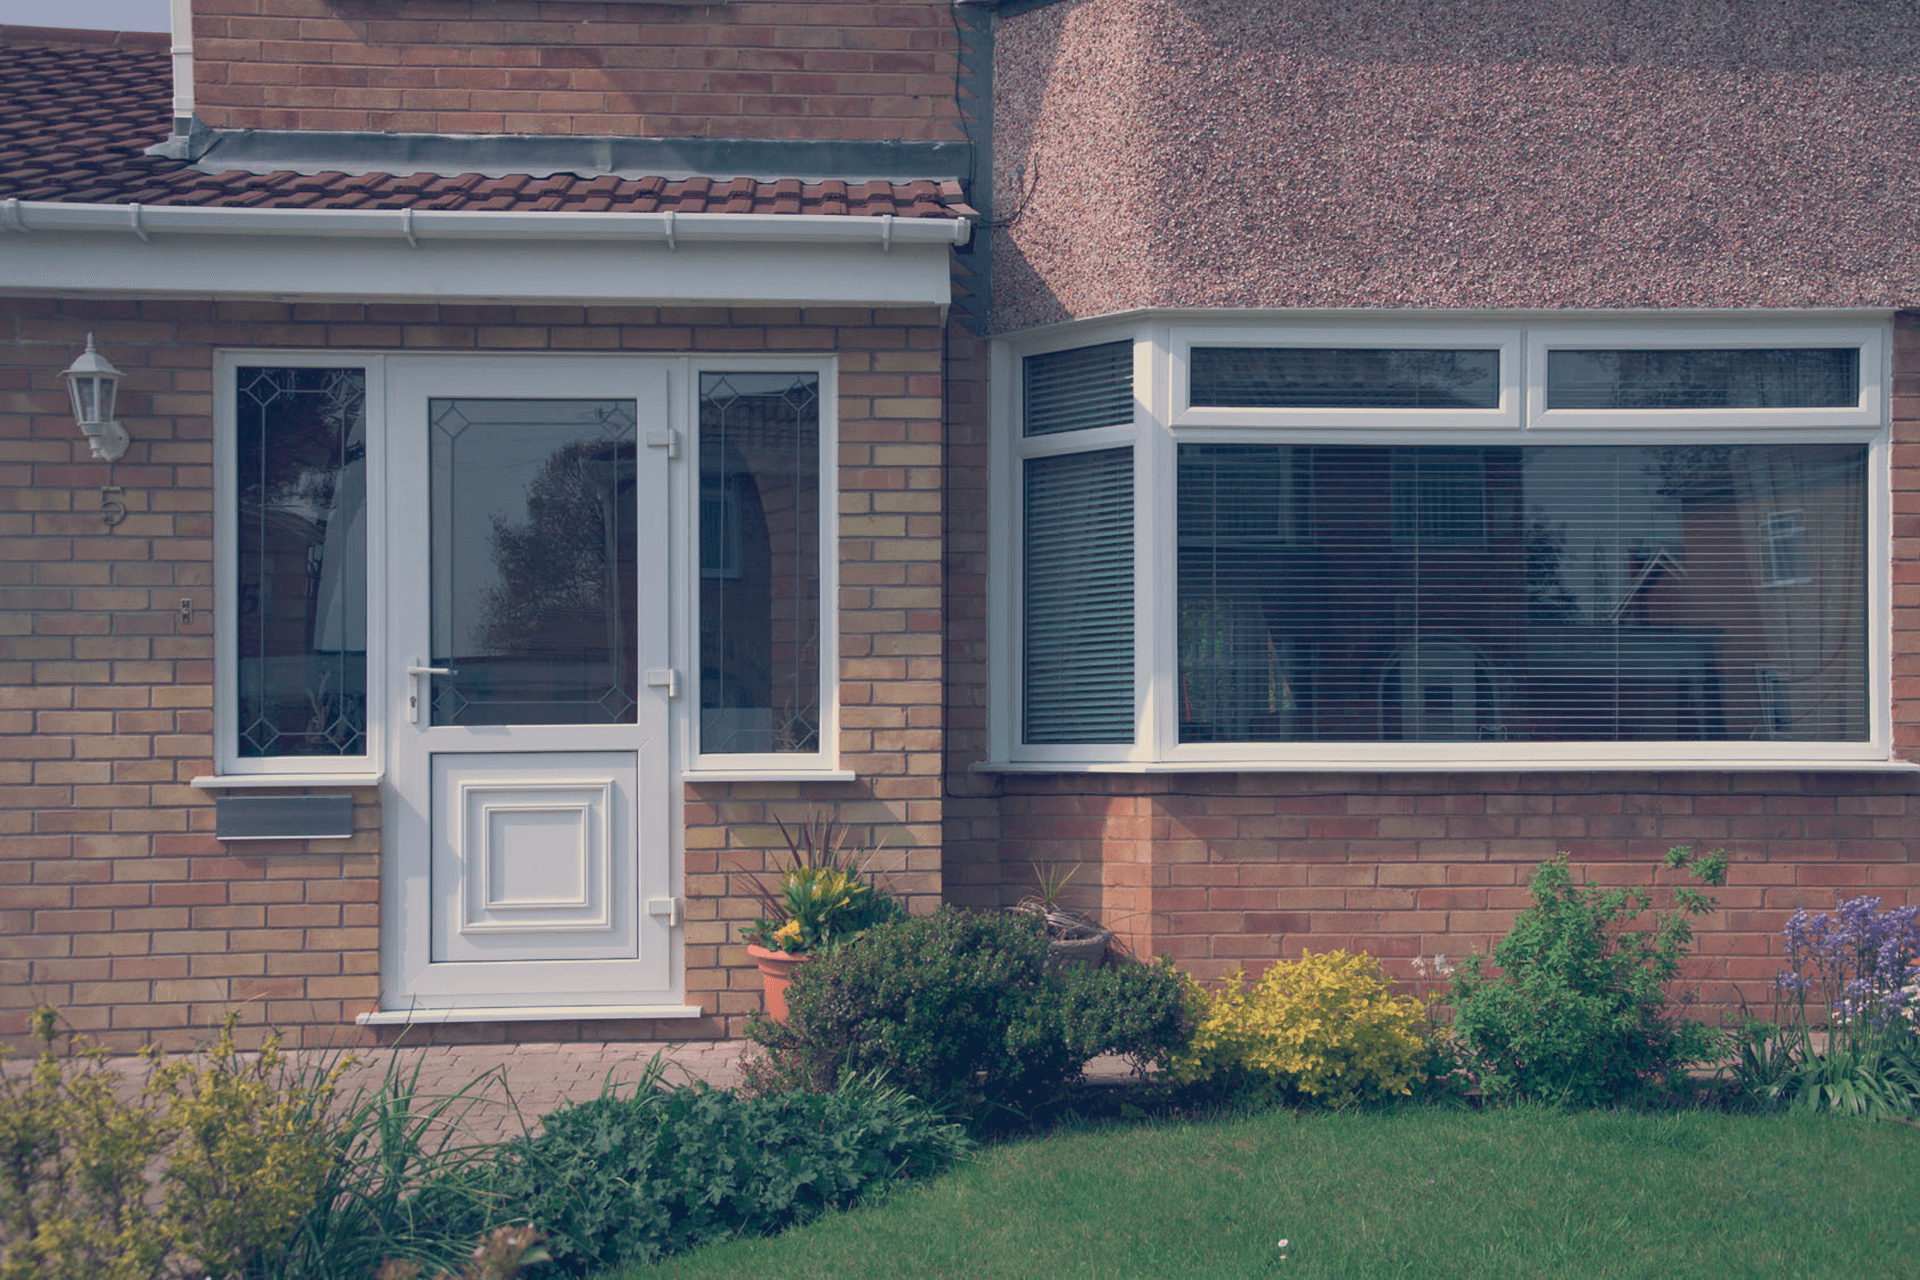 house door and window with blinds